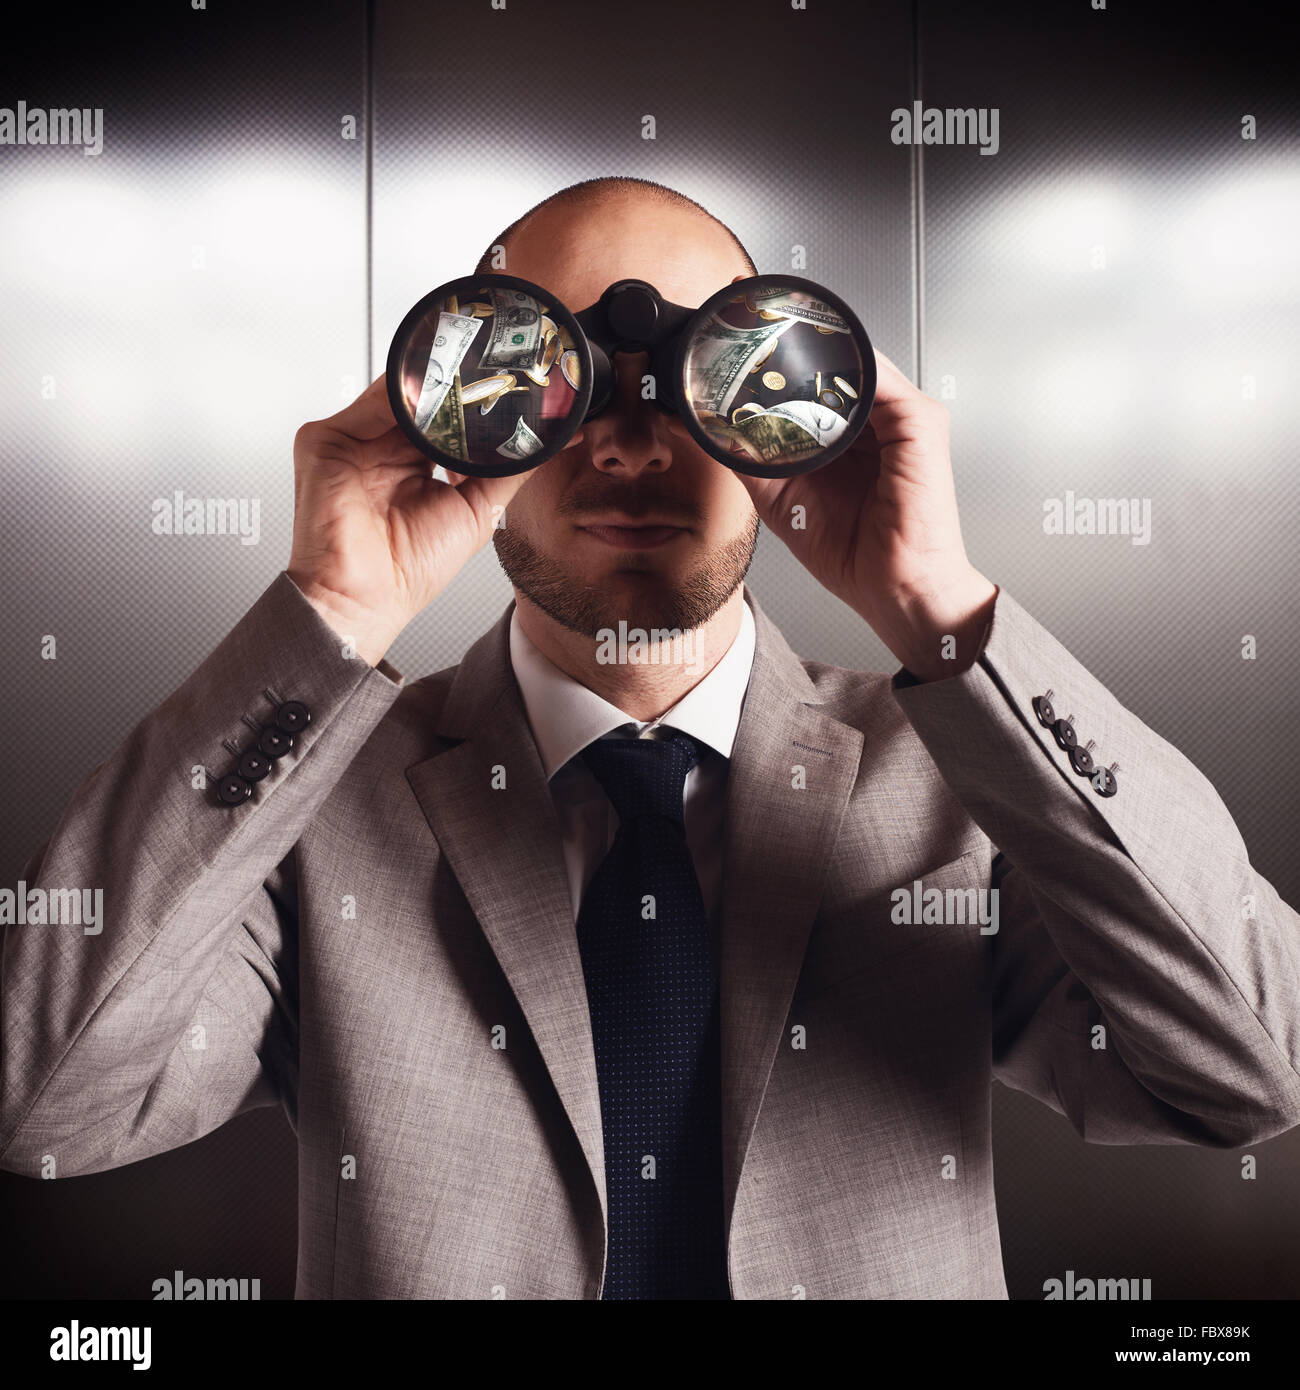 Search money - Stock Image